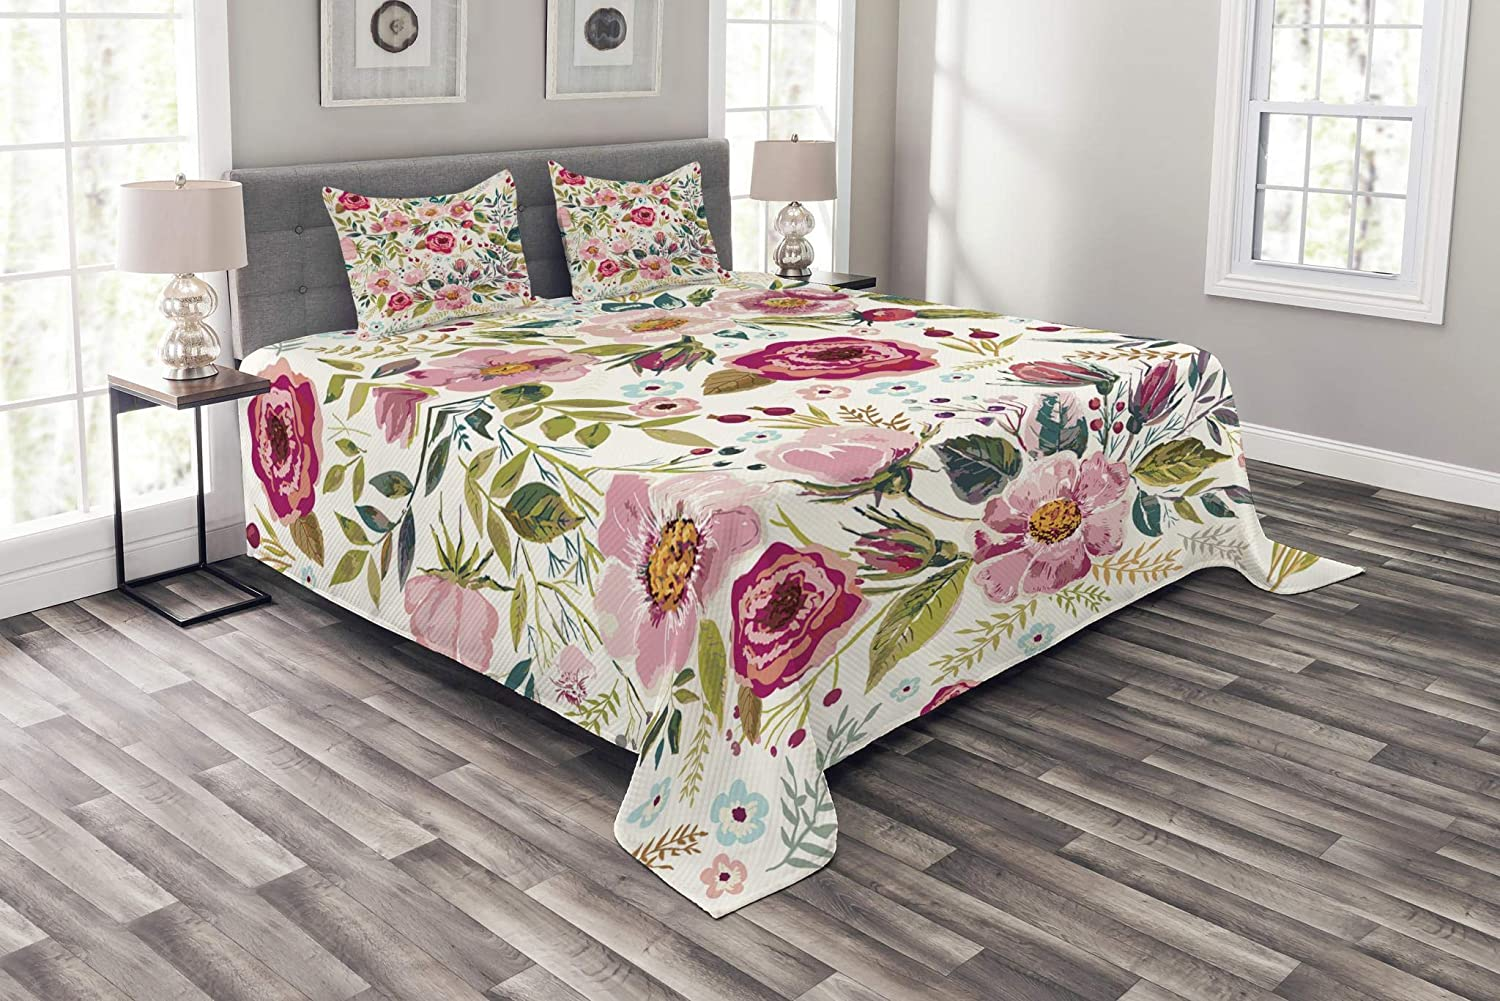 Lunarable Floral Bedspread, Shabby Form Flowers Roses Petals Dots Leaves Buds Spring Season Theme Image Artwork, Decorative Quilted 3 Piece Coverlet Set with 2 Pillow Shams, King Size, Magenta